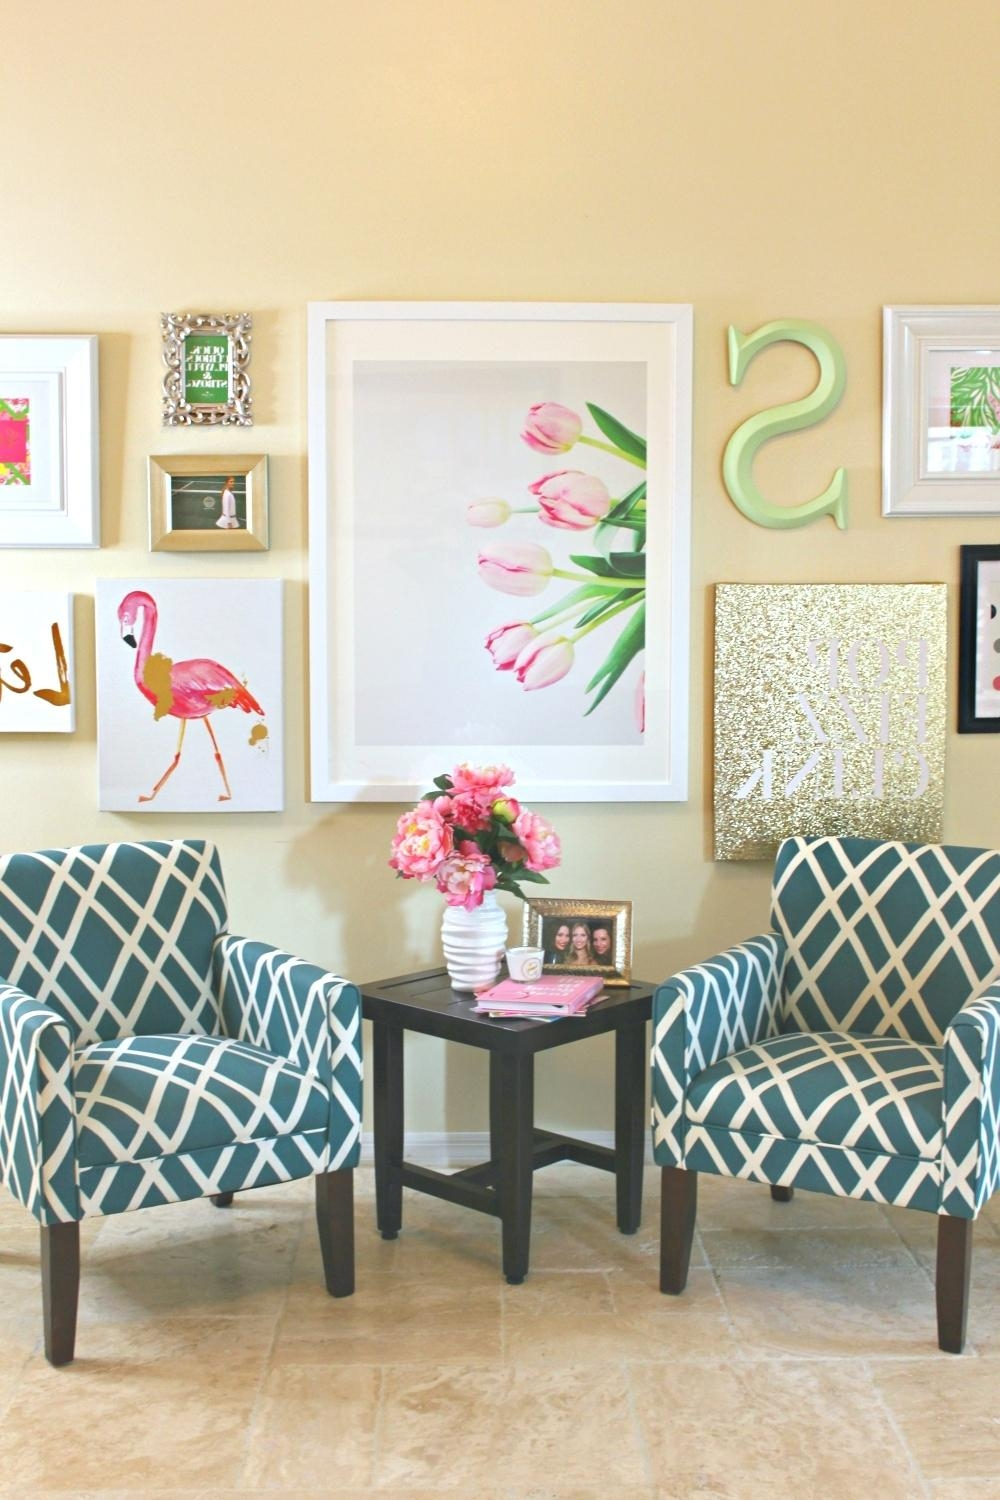 Home Design : 81 Amazing Wall Art For Living Rooms Pertaining To Vibrant Wall Art (Image 9 of 20)